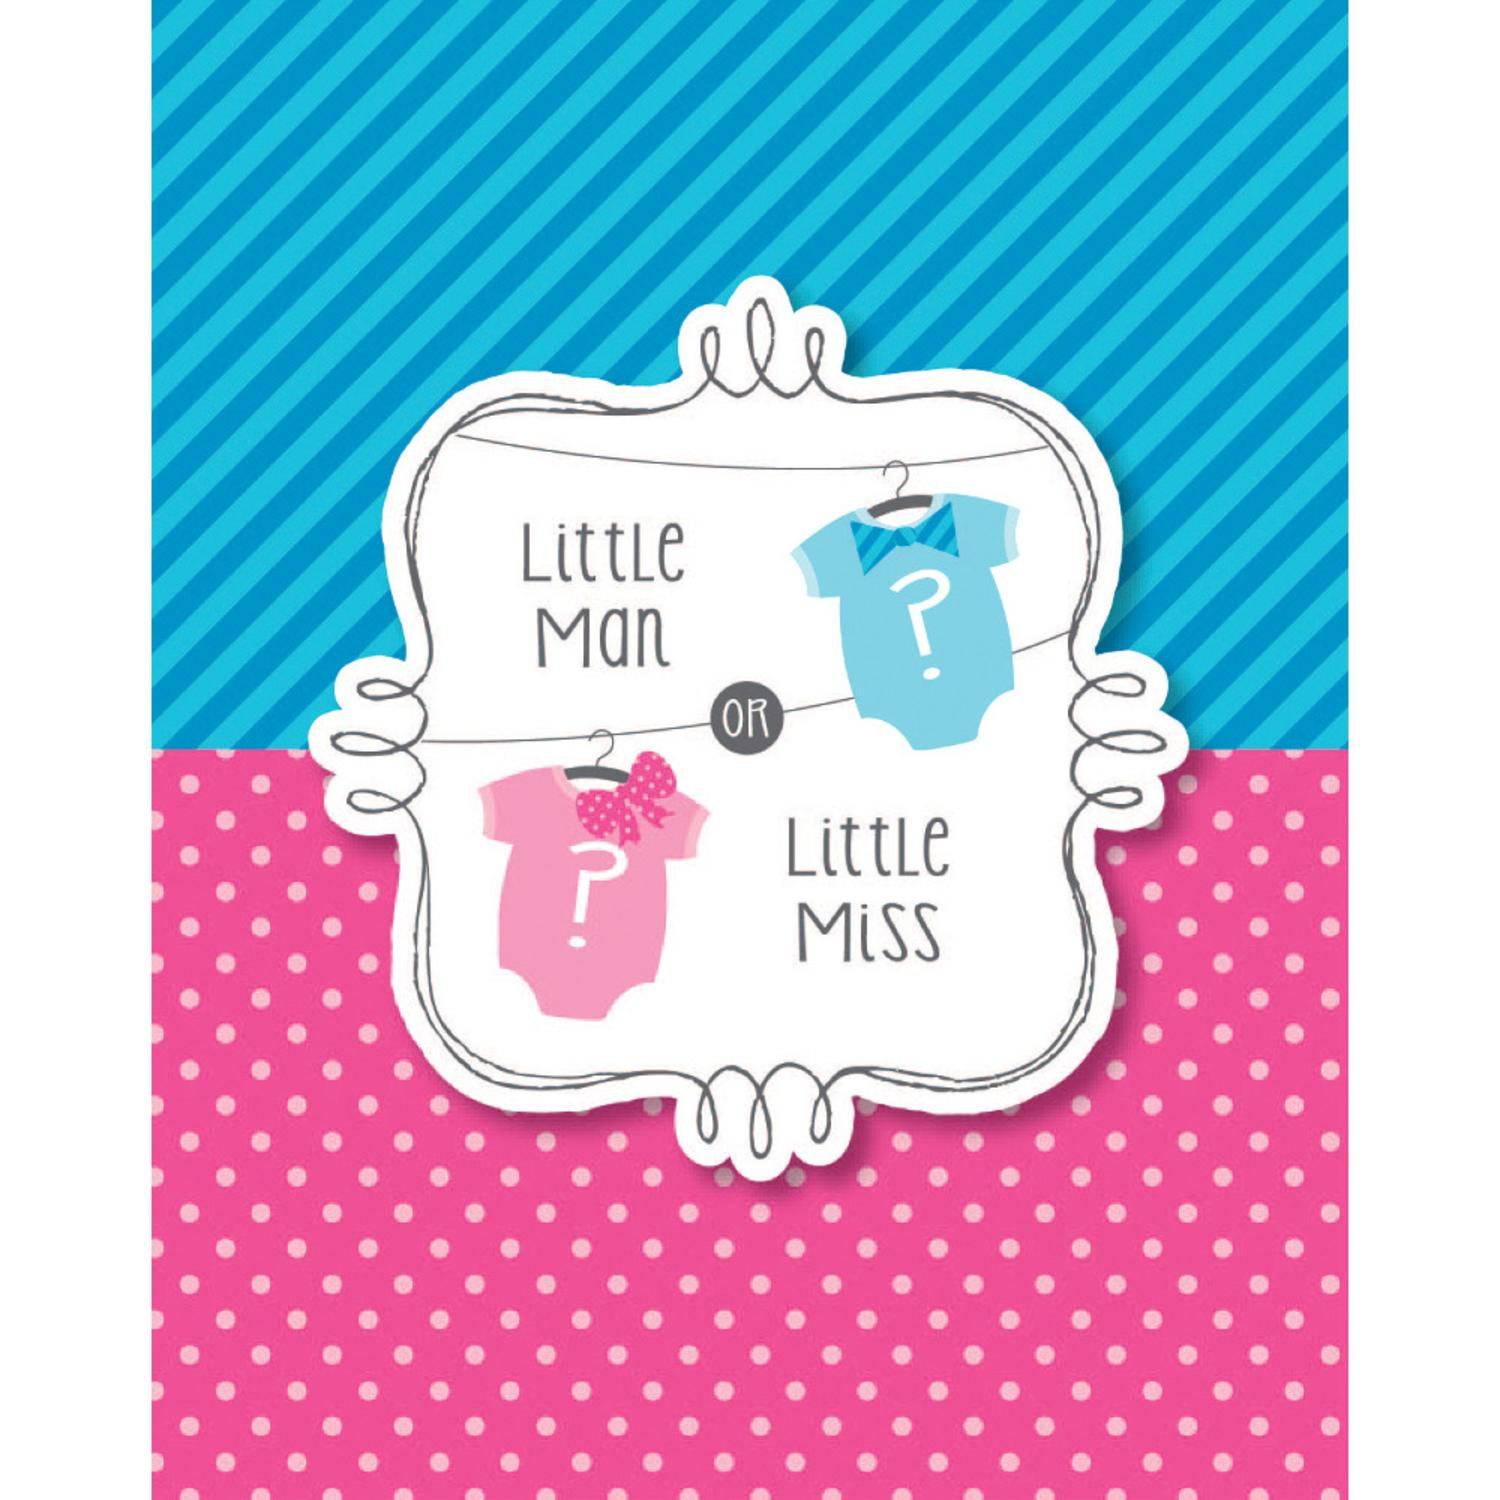 Club Pack of 48 Bow or Bowtie? Paper Baby Shower Invitation Cards